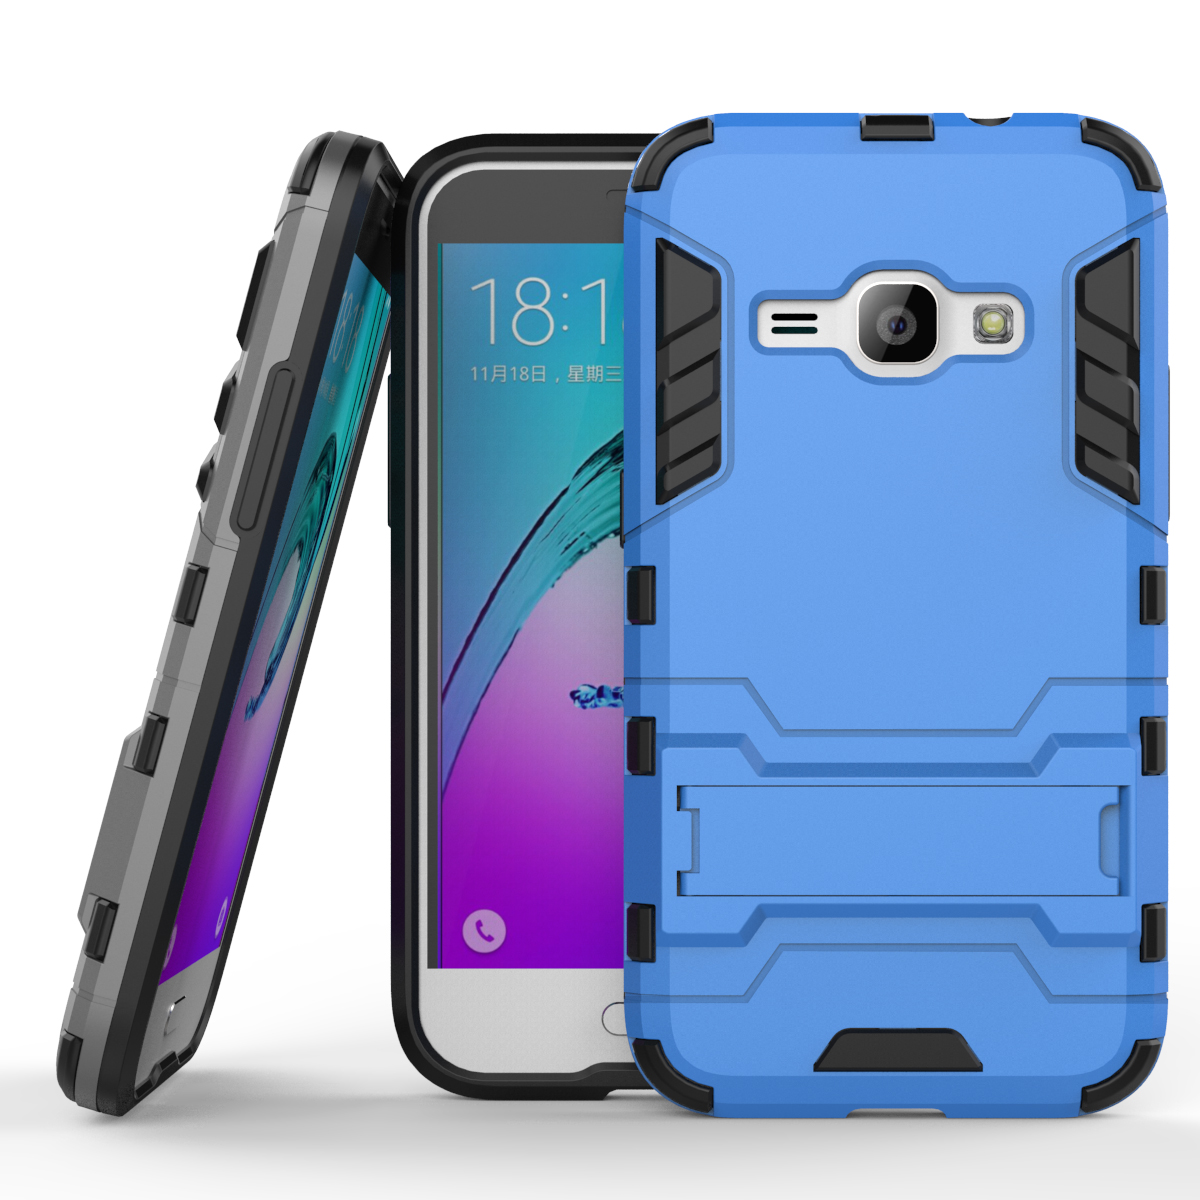 For Samsung Galaxy J2 2018 J2 Pro J250 J1 Ace J110 J1 2016 J120 J2 Prime G530 G532 Case Iron Man Cover Stand Shockproof Shell Fitted Cases Aliexpress